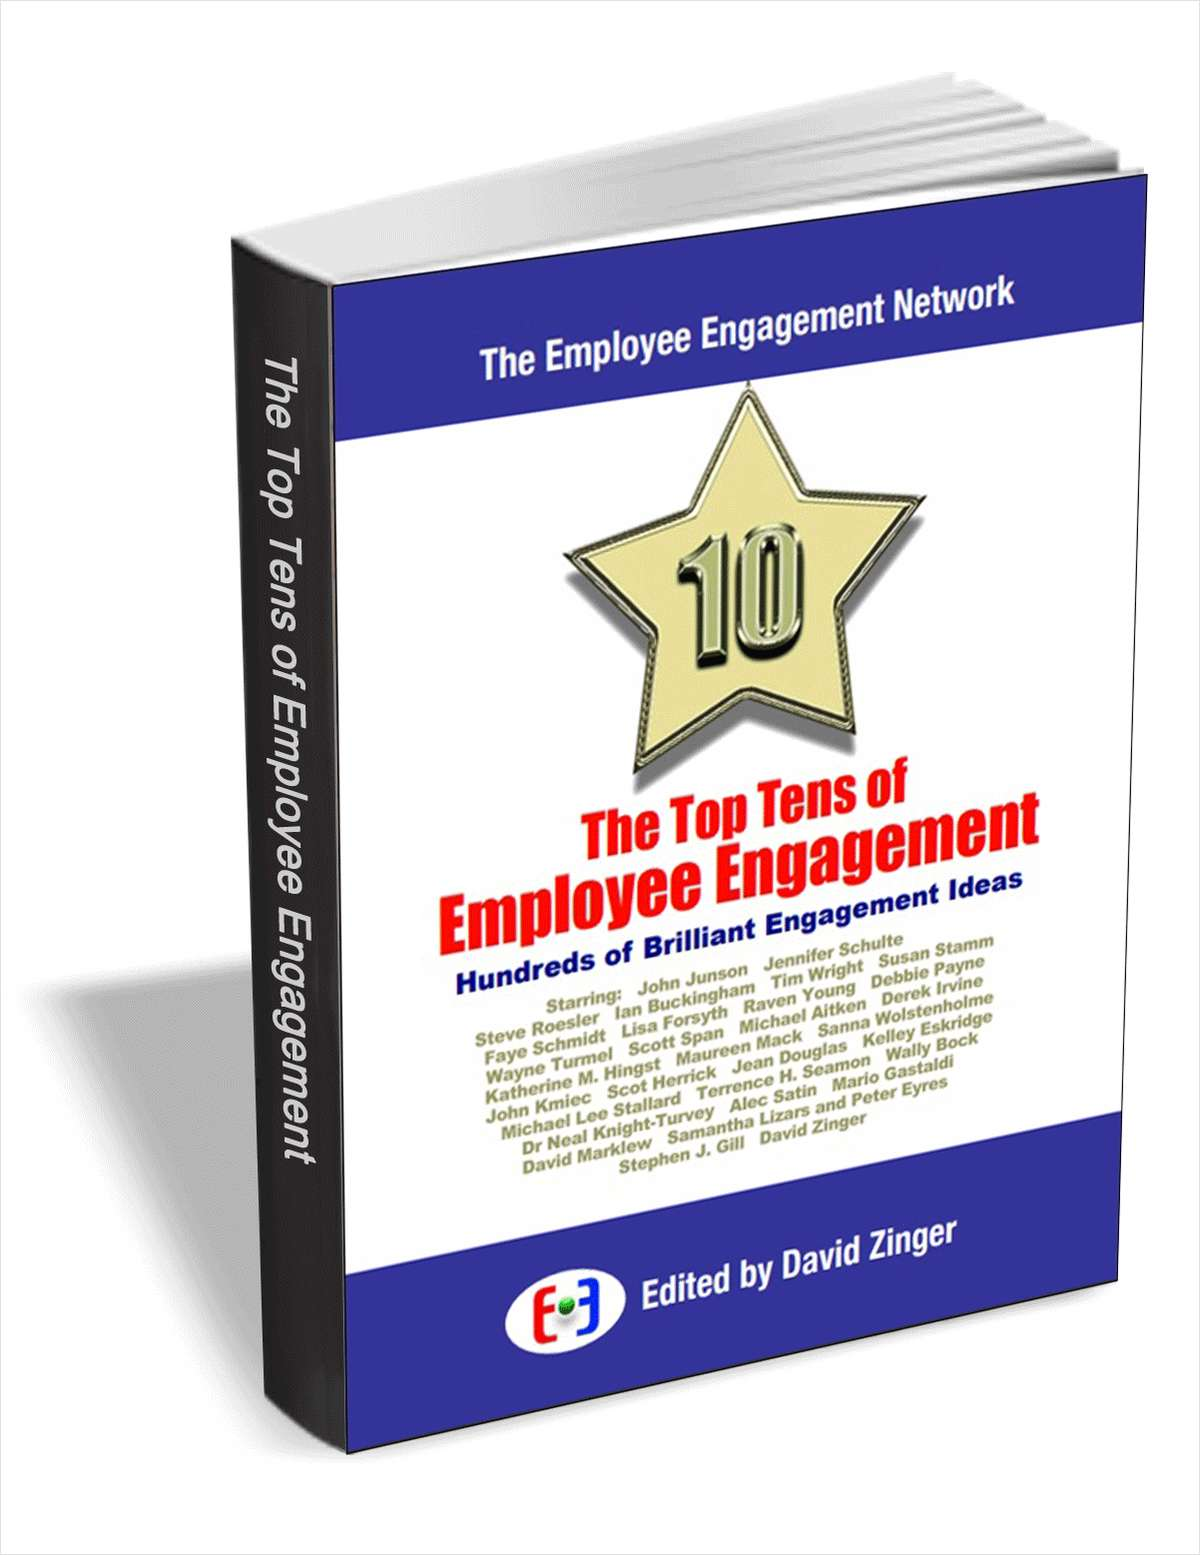 The Top Tens of Employee Engagement - Hundreds of Brilliant Engagement Ideas